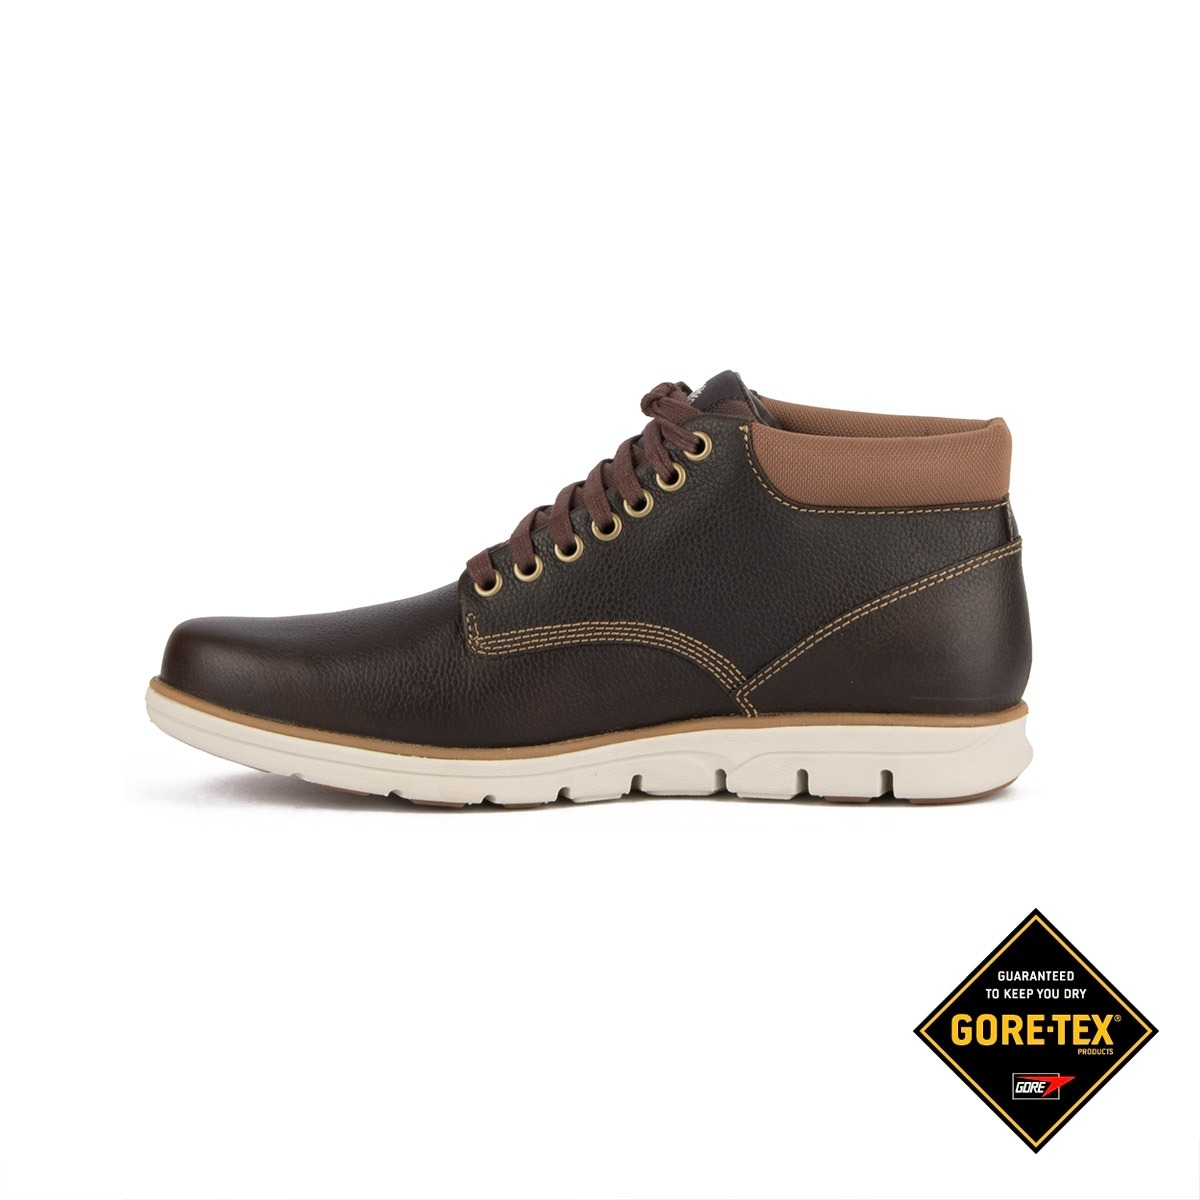 Timberland Bota Bradstreet Chukka Leather GTX Turkish Coffe Marrón Hombre